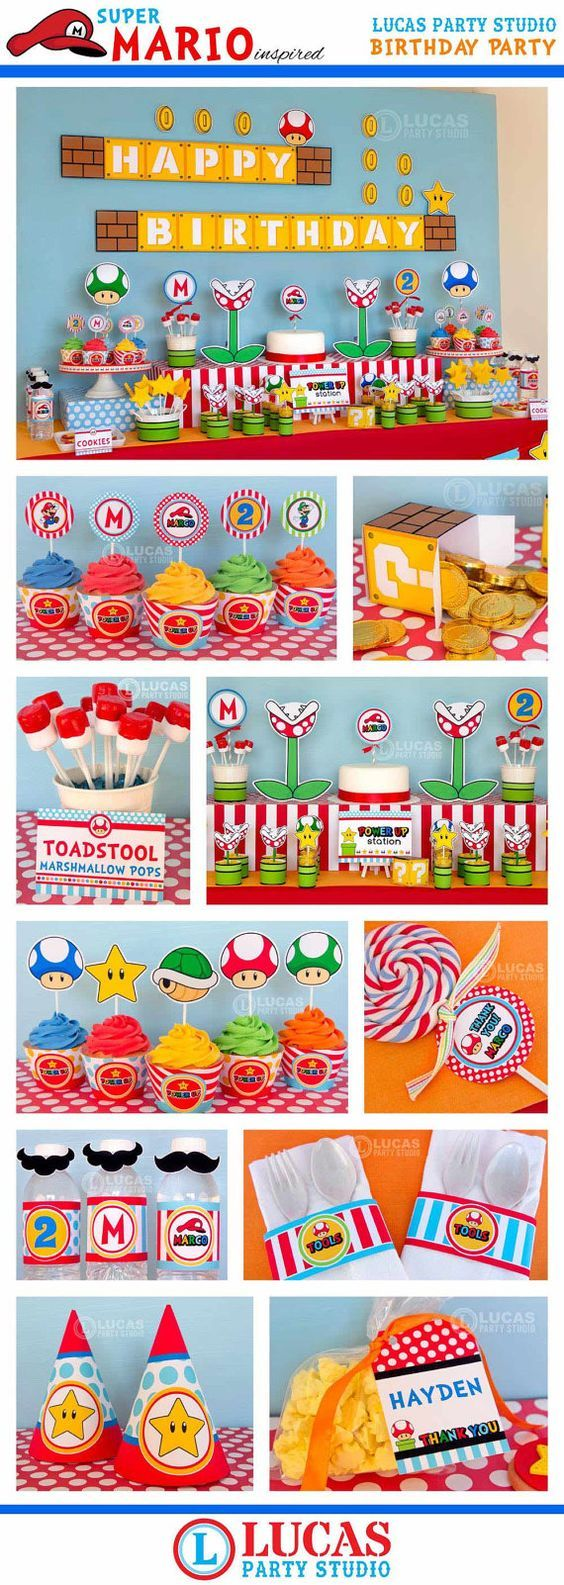 Super Mario Inspired Birthday Party – PRINTABLE Personalized Package